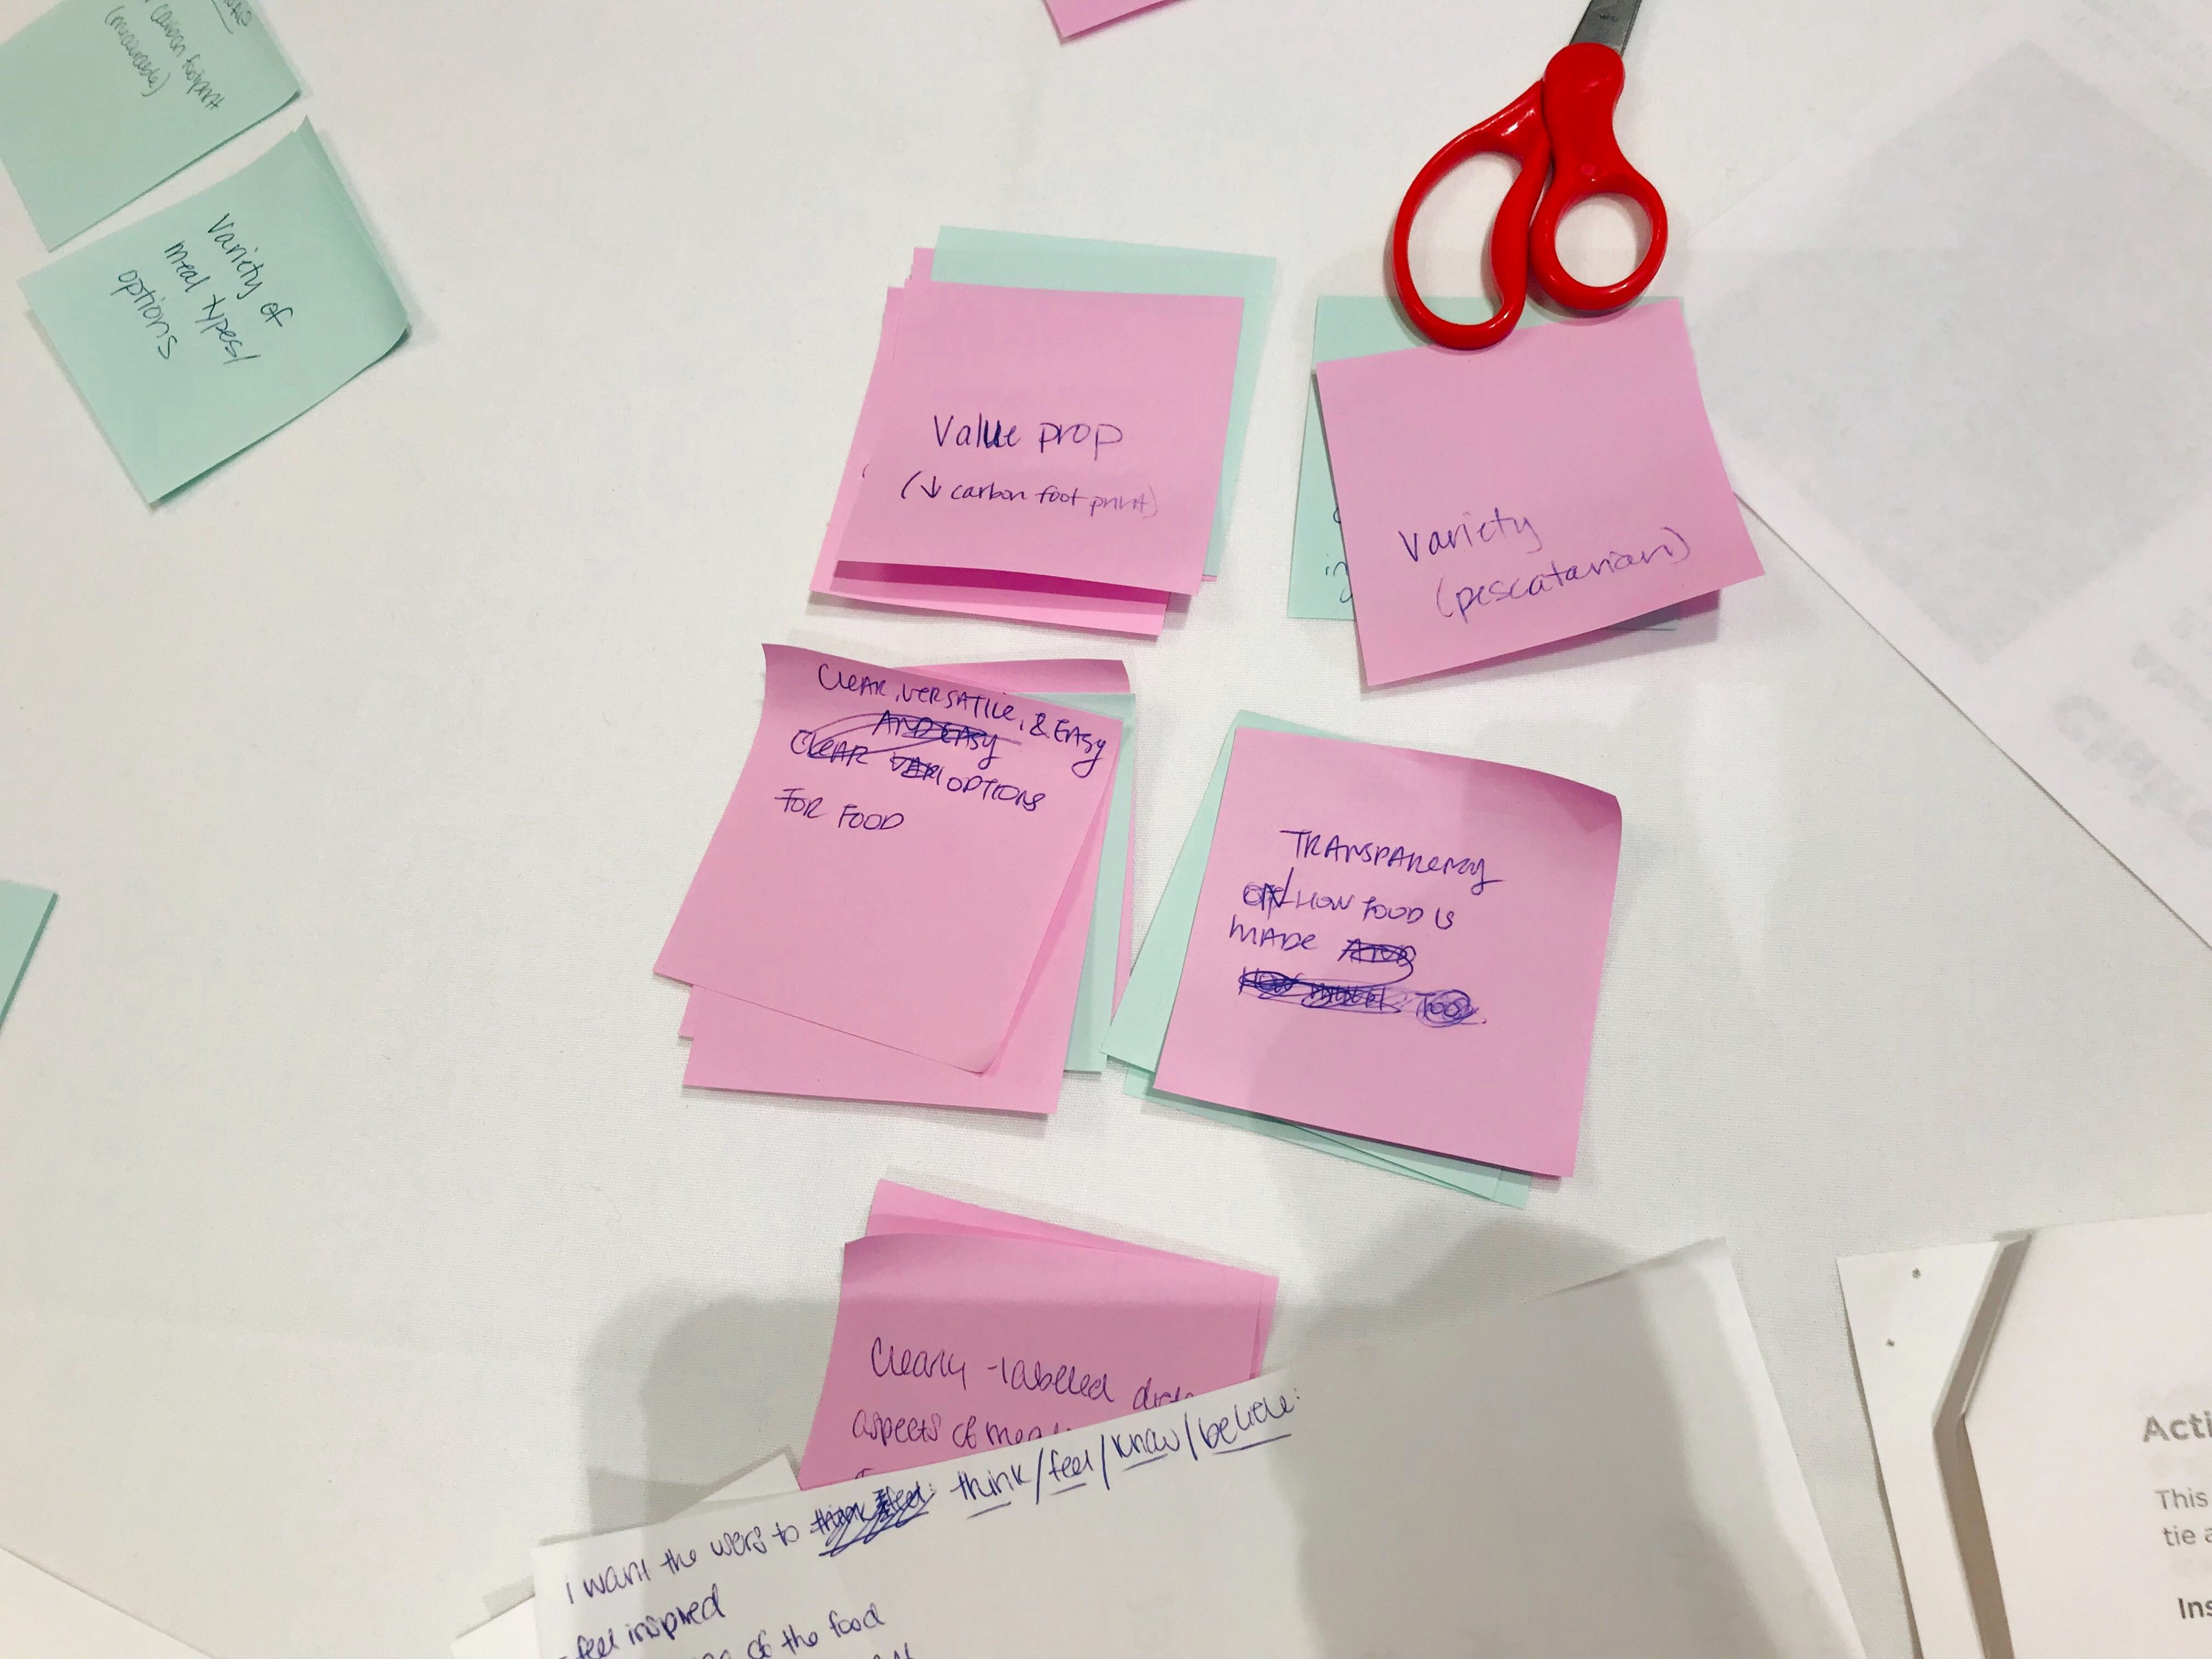 Groups of pink and teal post-it notes are stuck on a table with brainstorm ideas written on them